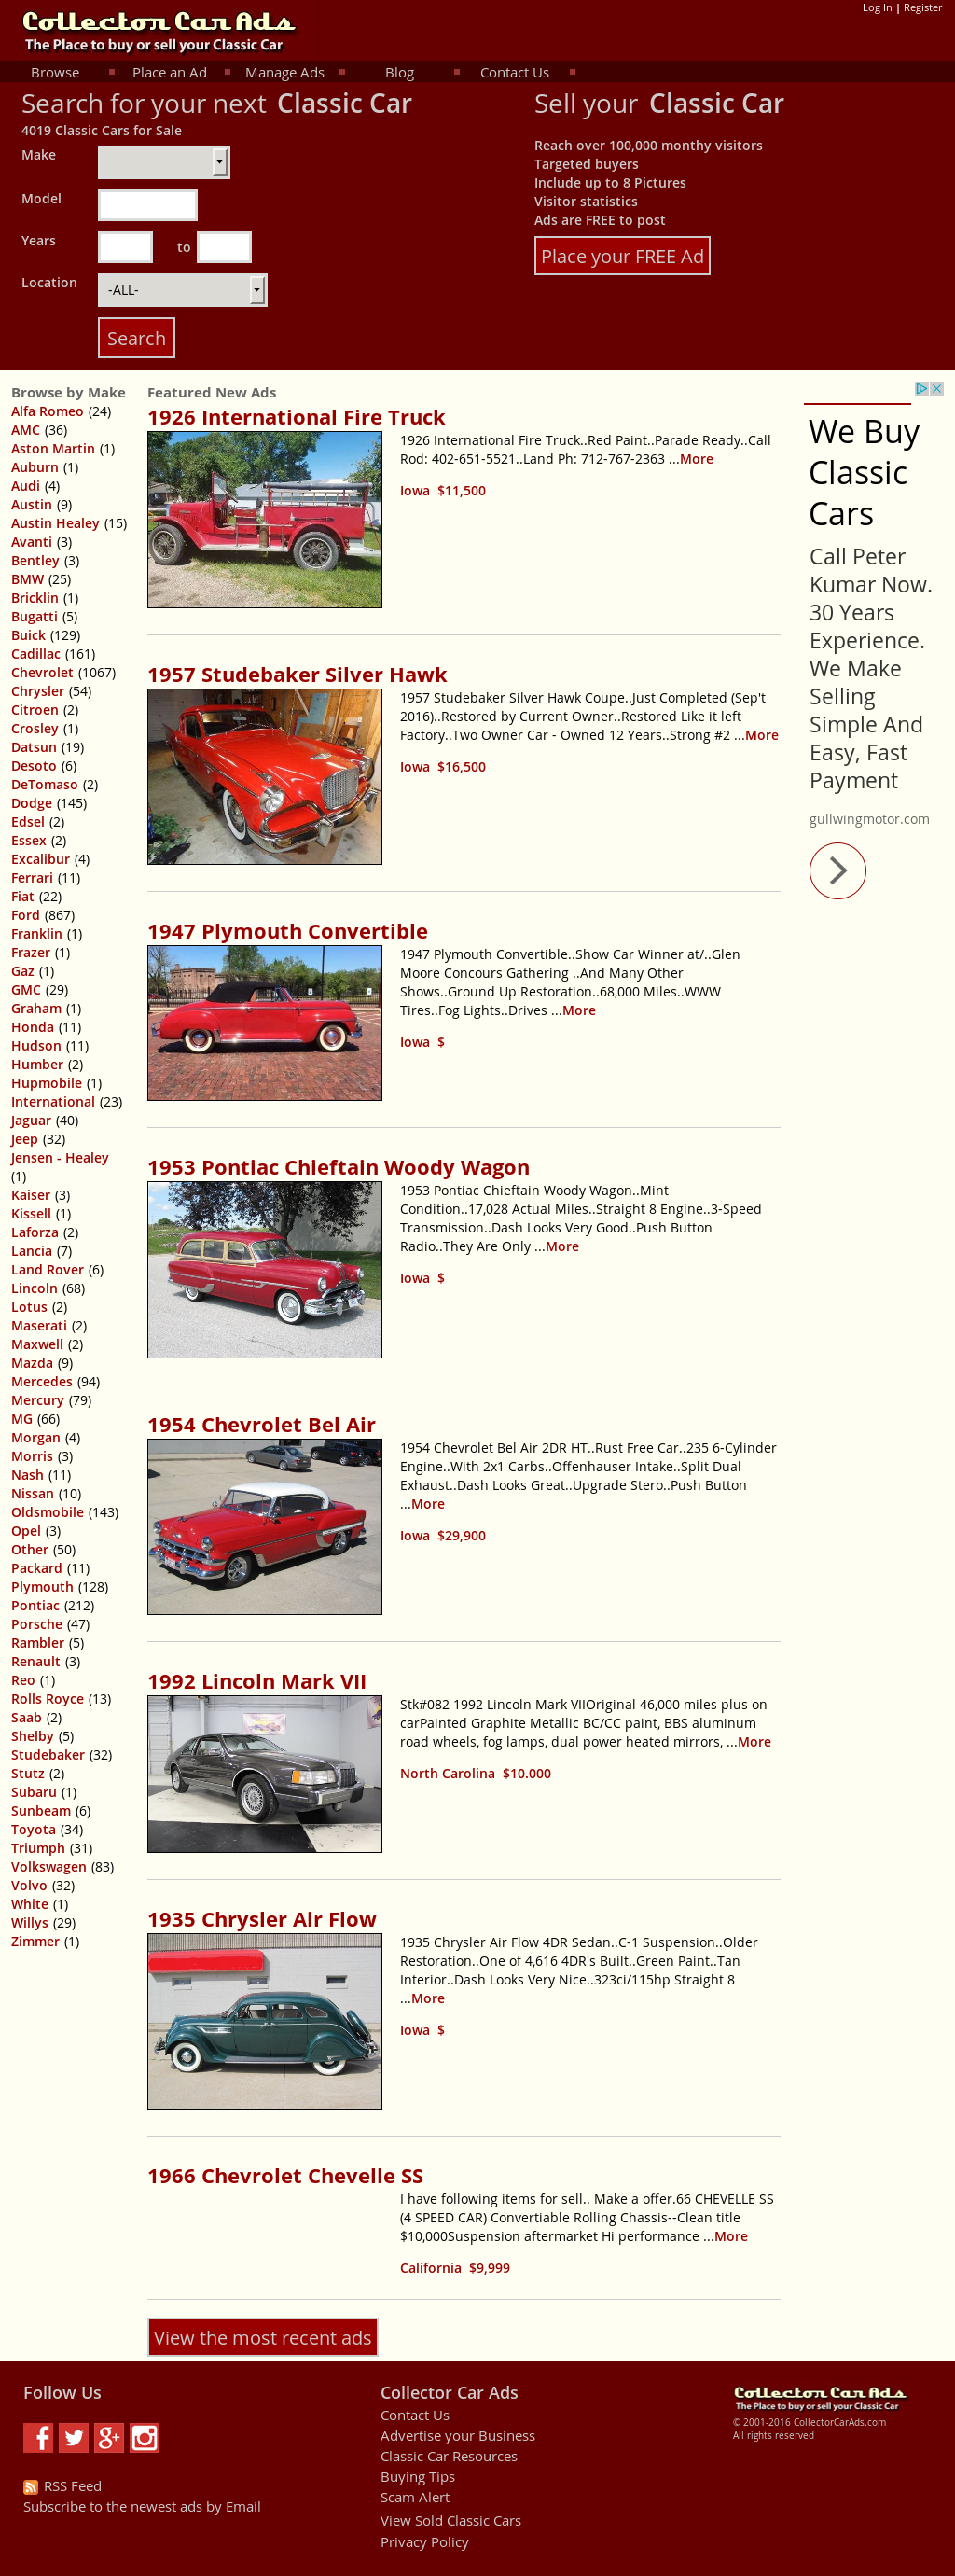 Collector Car Ads Competitors, Revenue and Employees - Owler